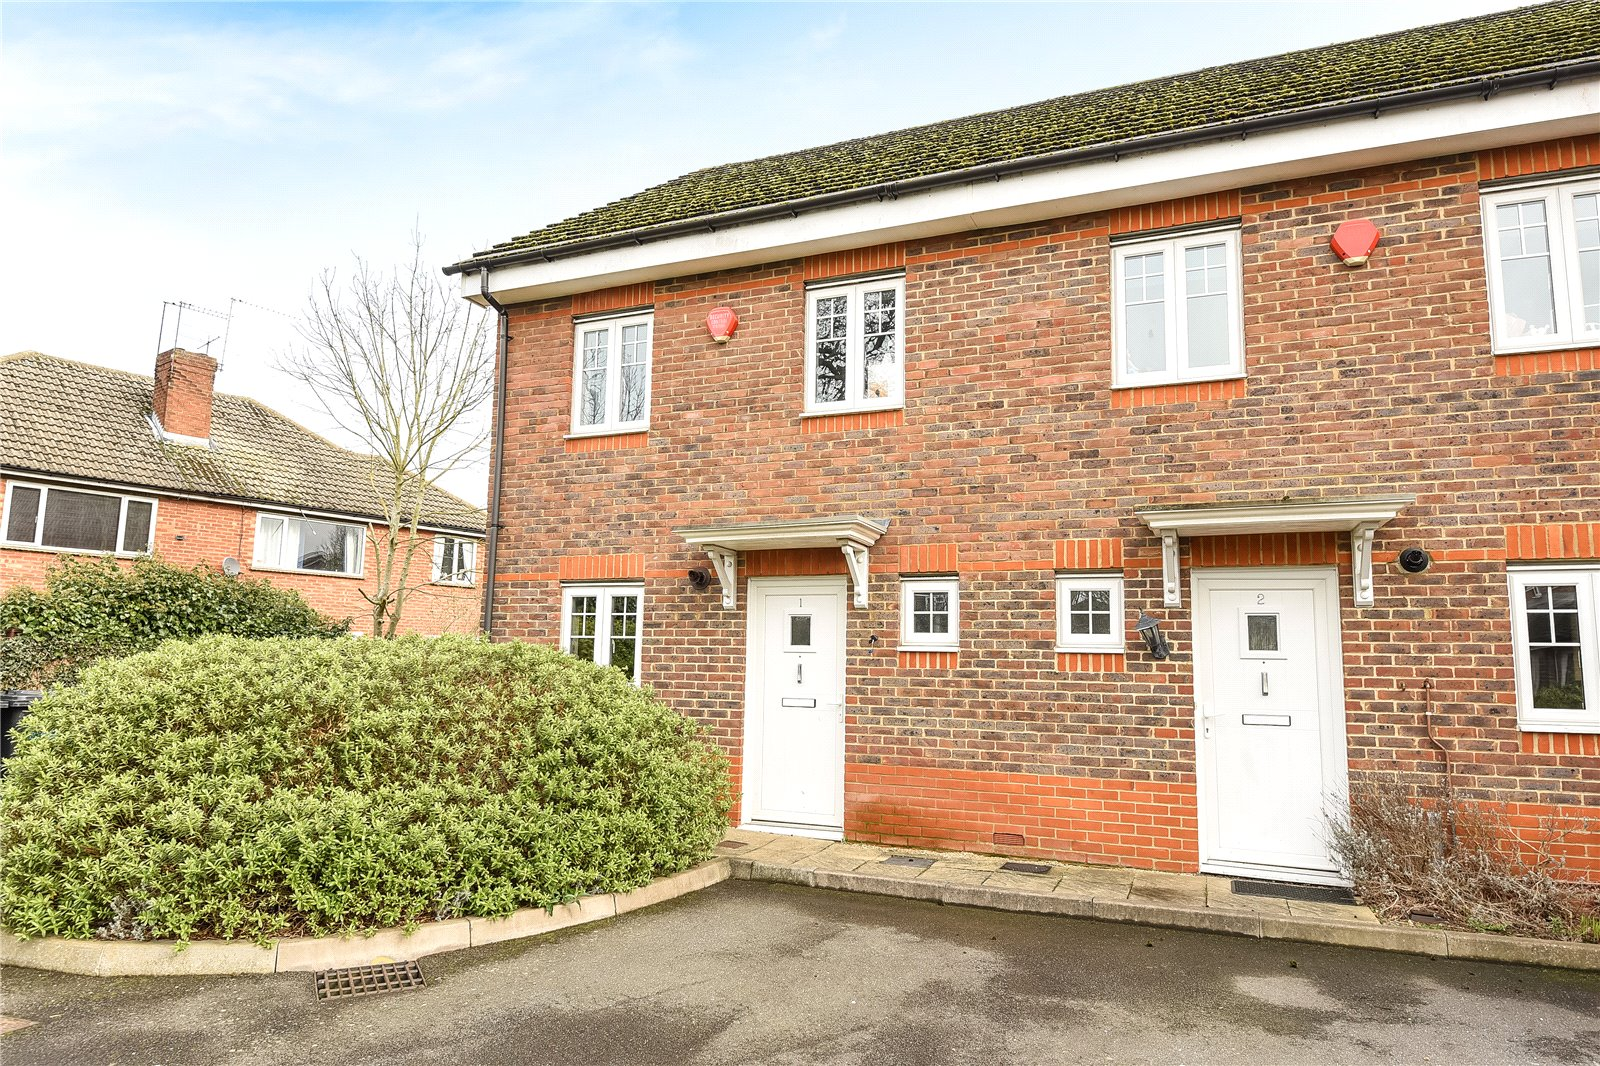 3 Bedrooms End Of Terrace House for sale in Emilia Close, Maidenhead, Berkshire, SL6